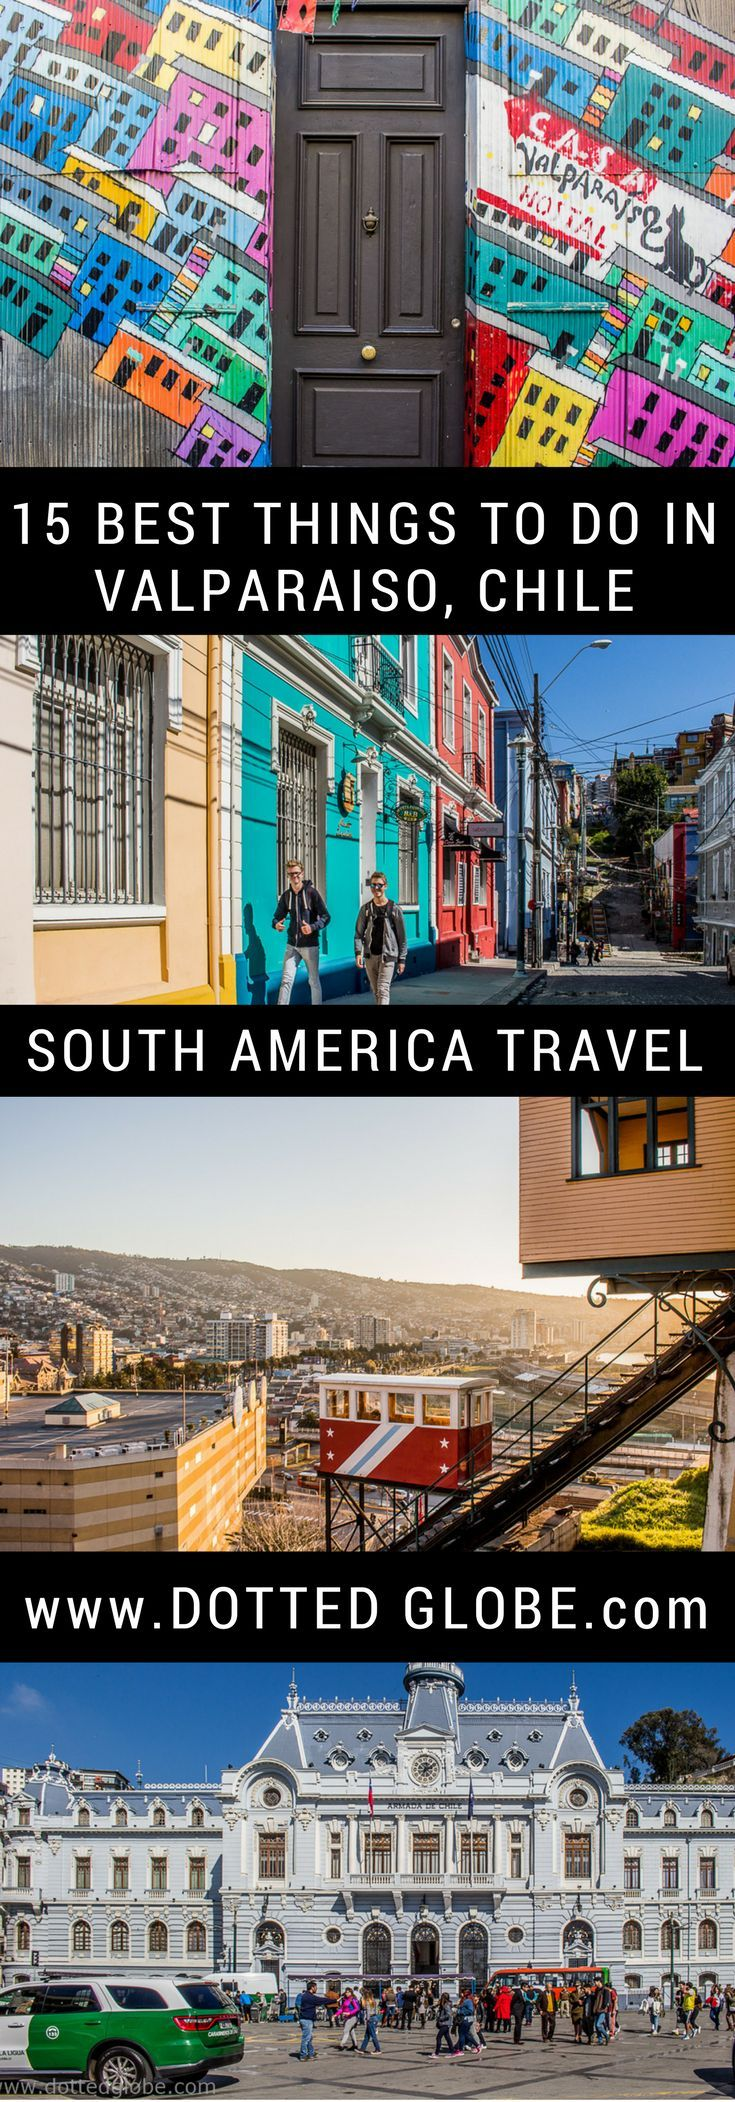 Comprehensive guide to best things to do in Valparaiso with beautiful photos, detailed descriptions and great tips. Covers all major attractions